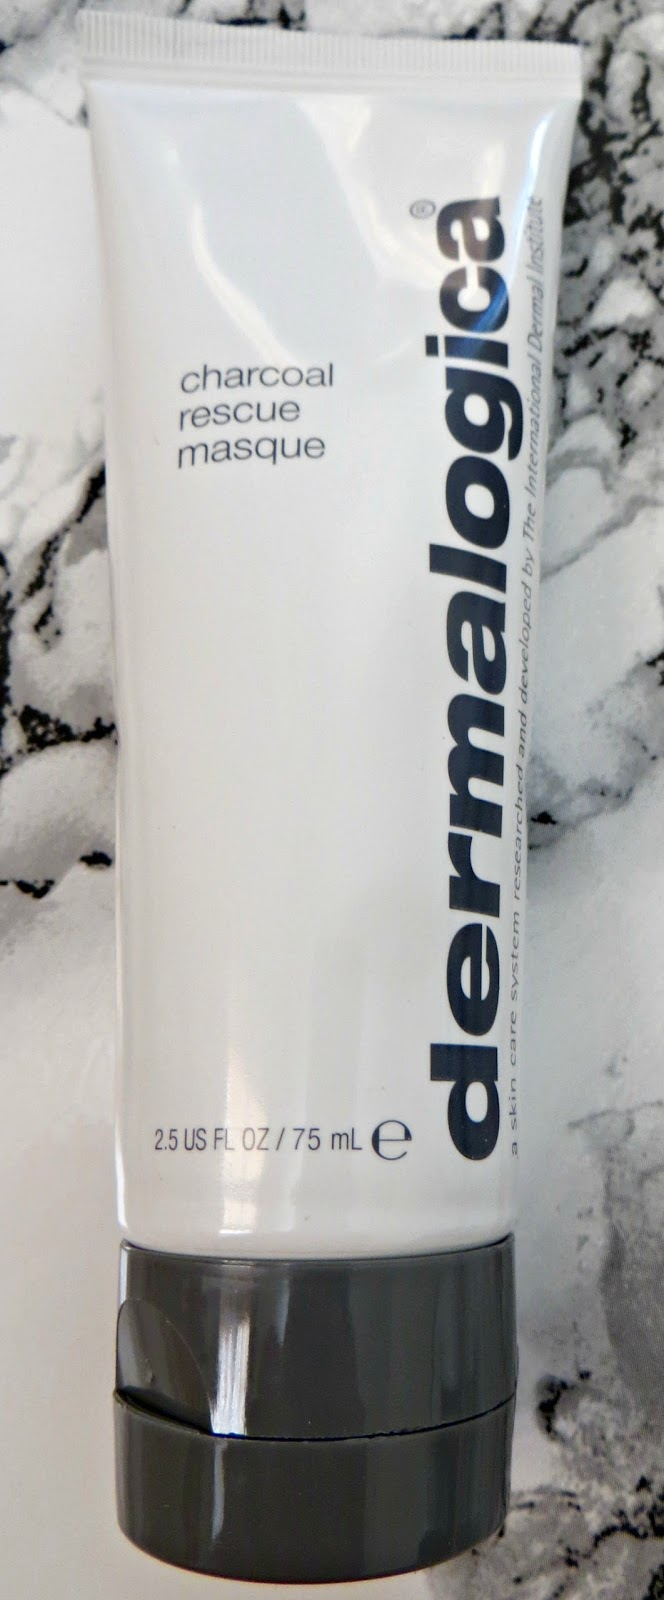 Dermalogica Charcoal Rescue Masque The best masque for brightening dull skin